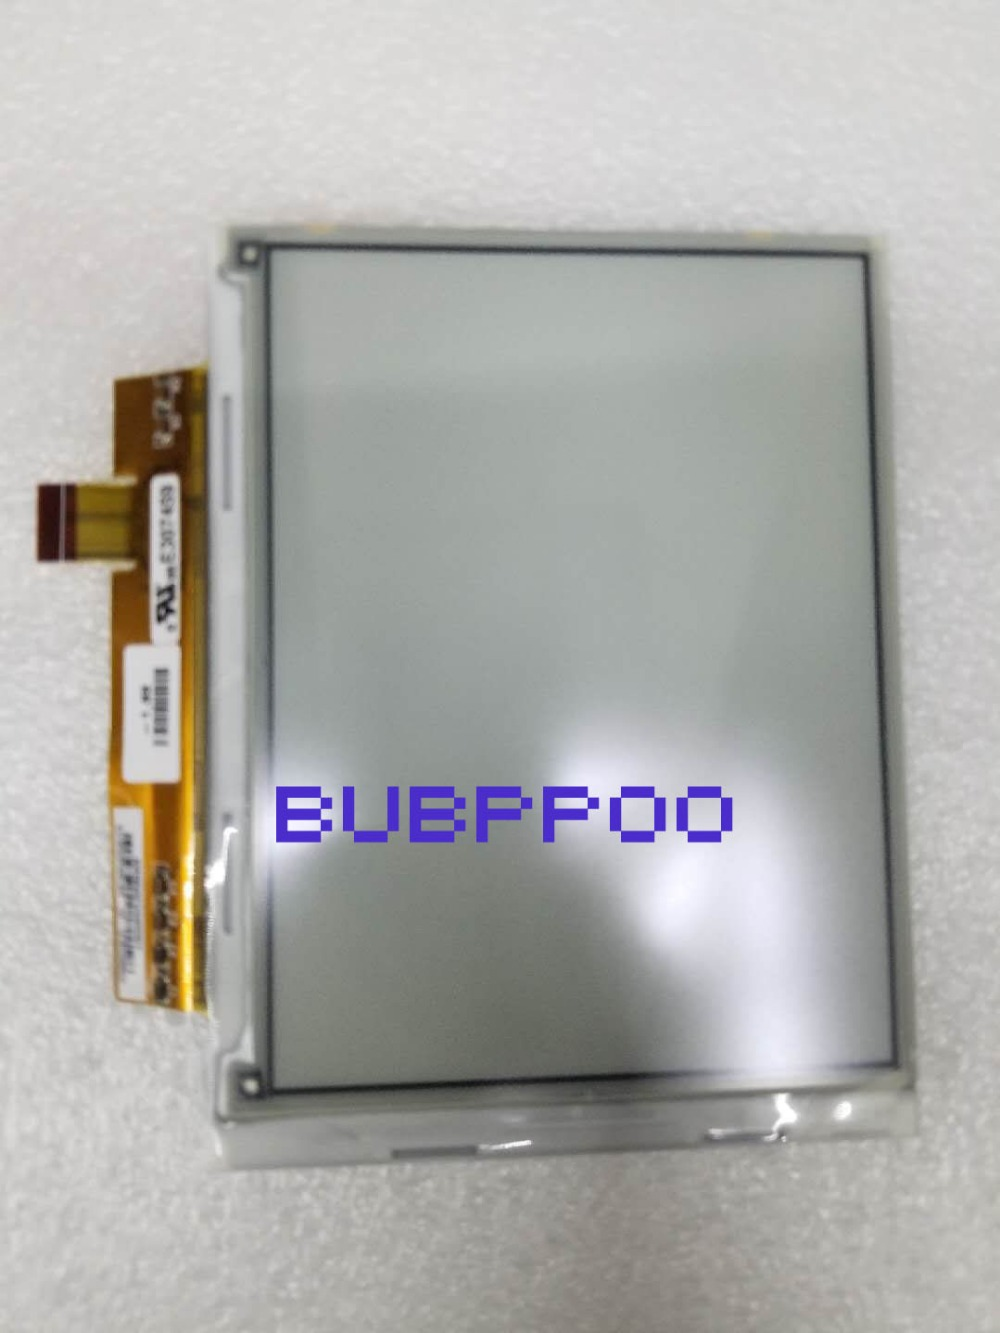 New 6 inch <font><b>39pin</b></font> for Bookeen Cybook Gen3 e-book reader <font><b>LCD</b></font> display <font><b>Screen</b></font> display Free shipping image